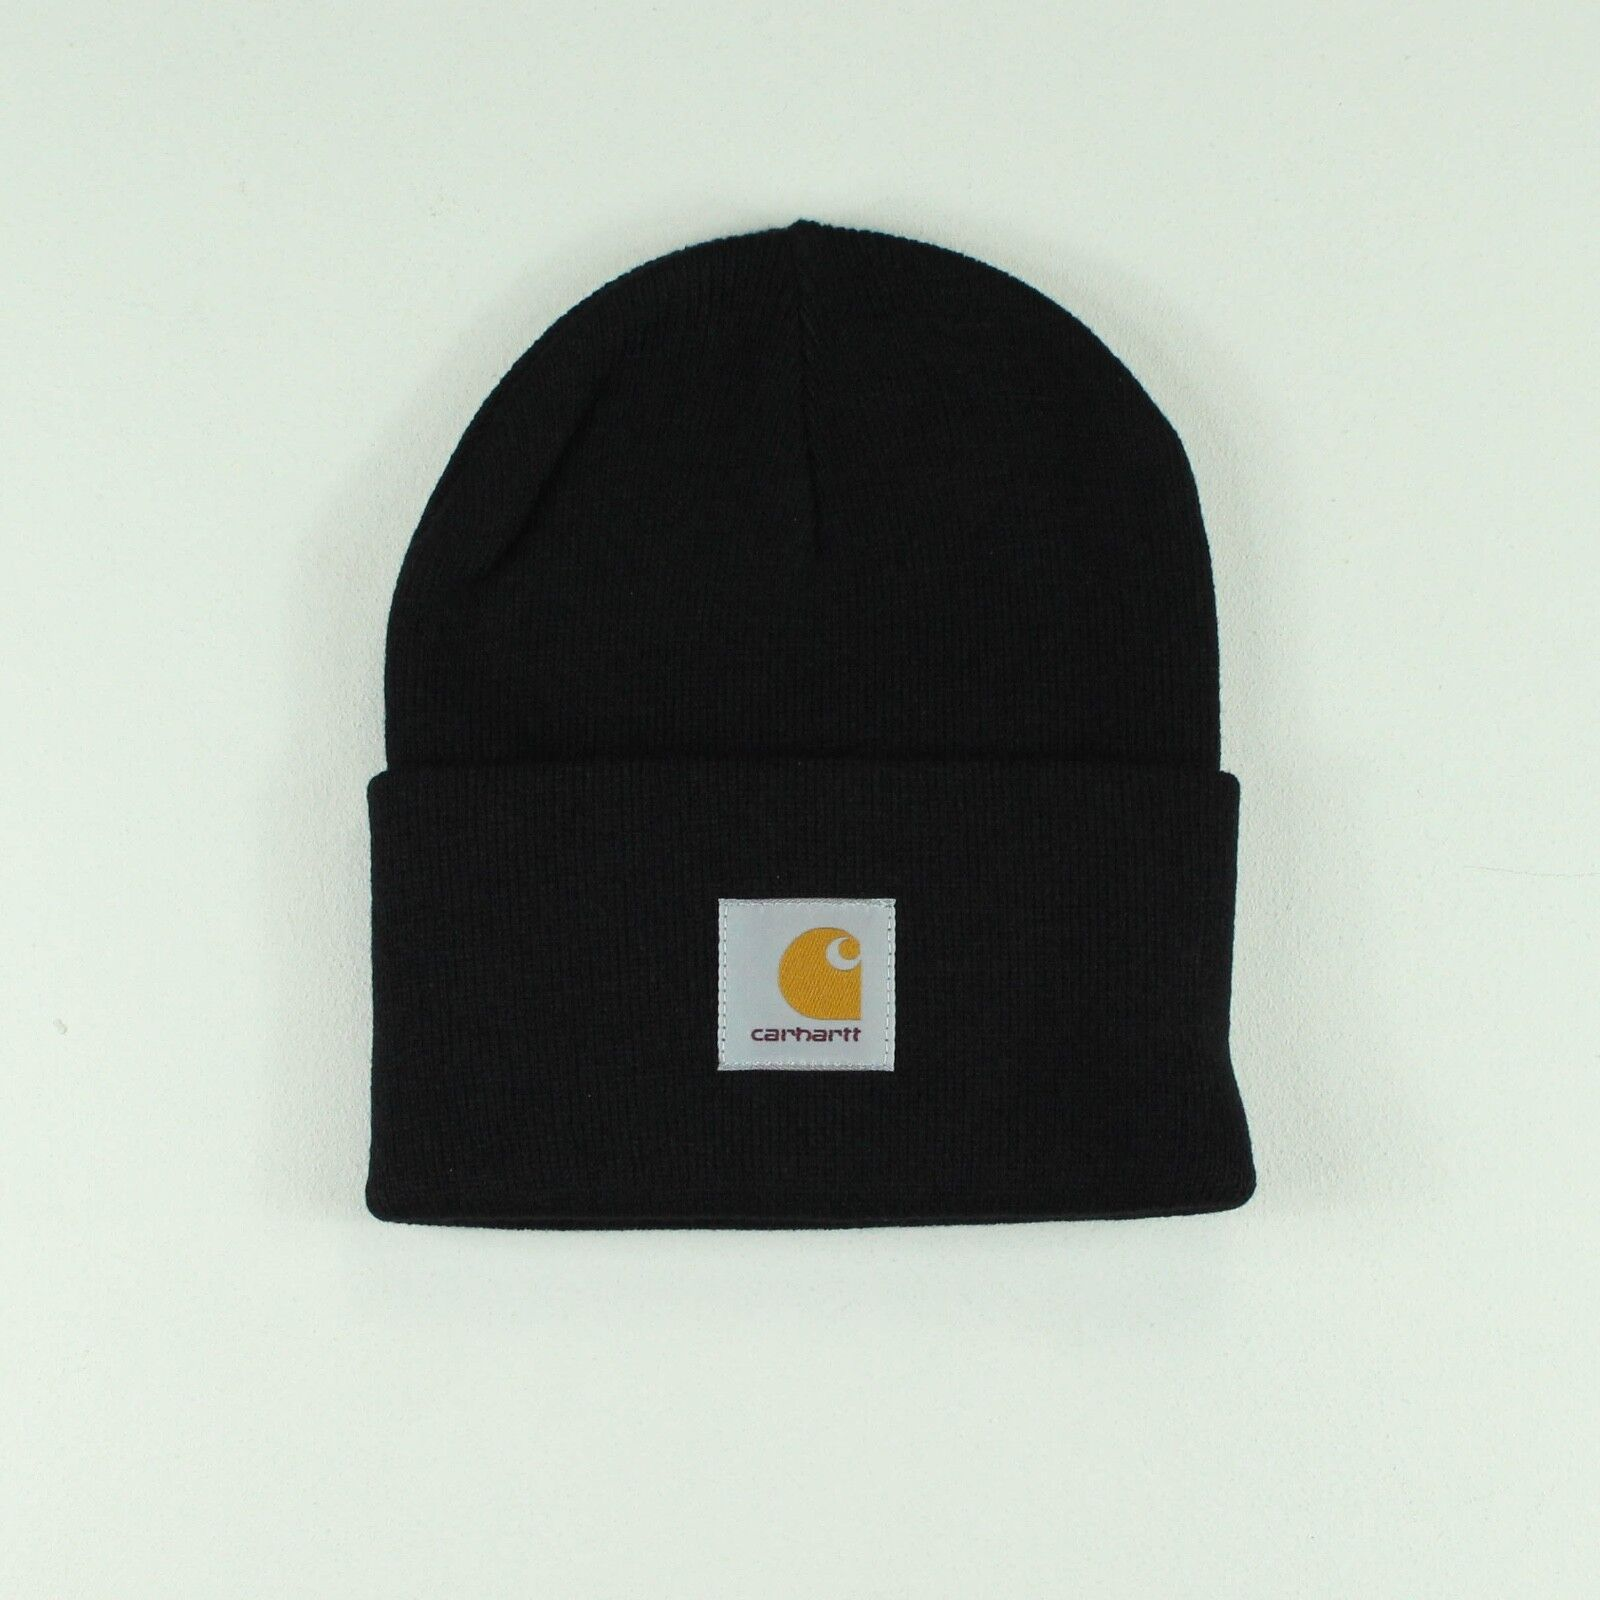 08d30f9ac9abd Details about Carhartt Acrylic Watch Hat Beanie Brand New in One Size in  Black